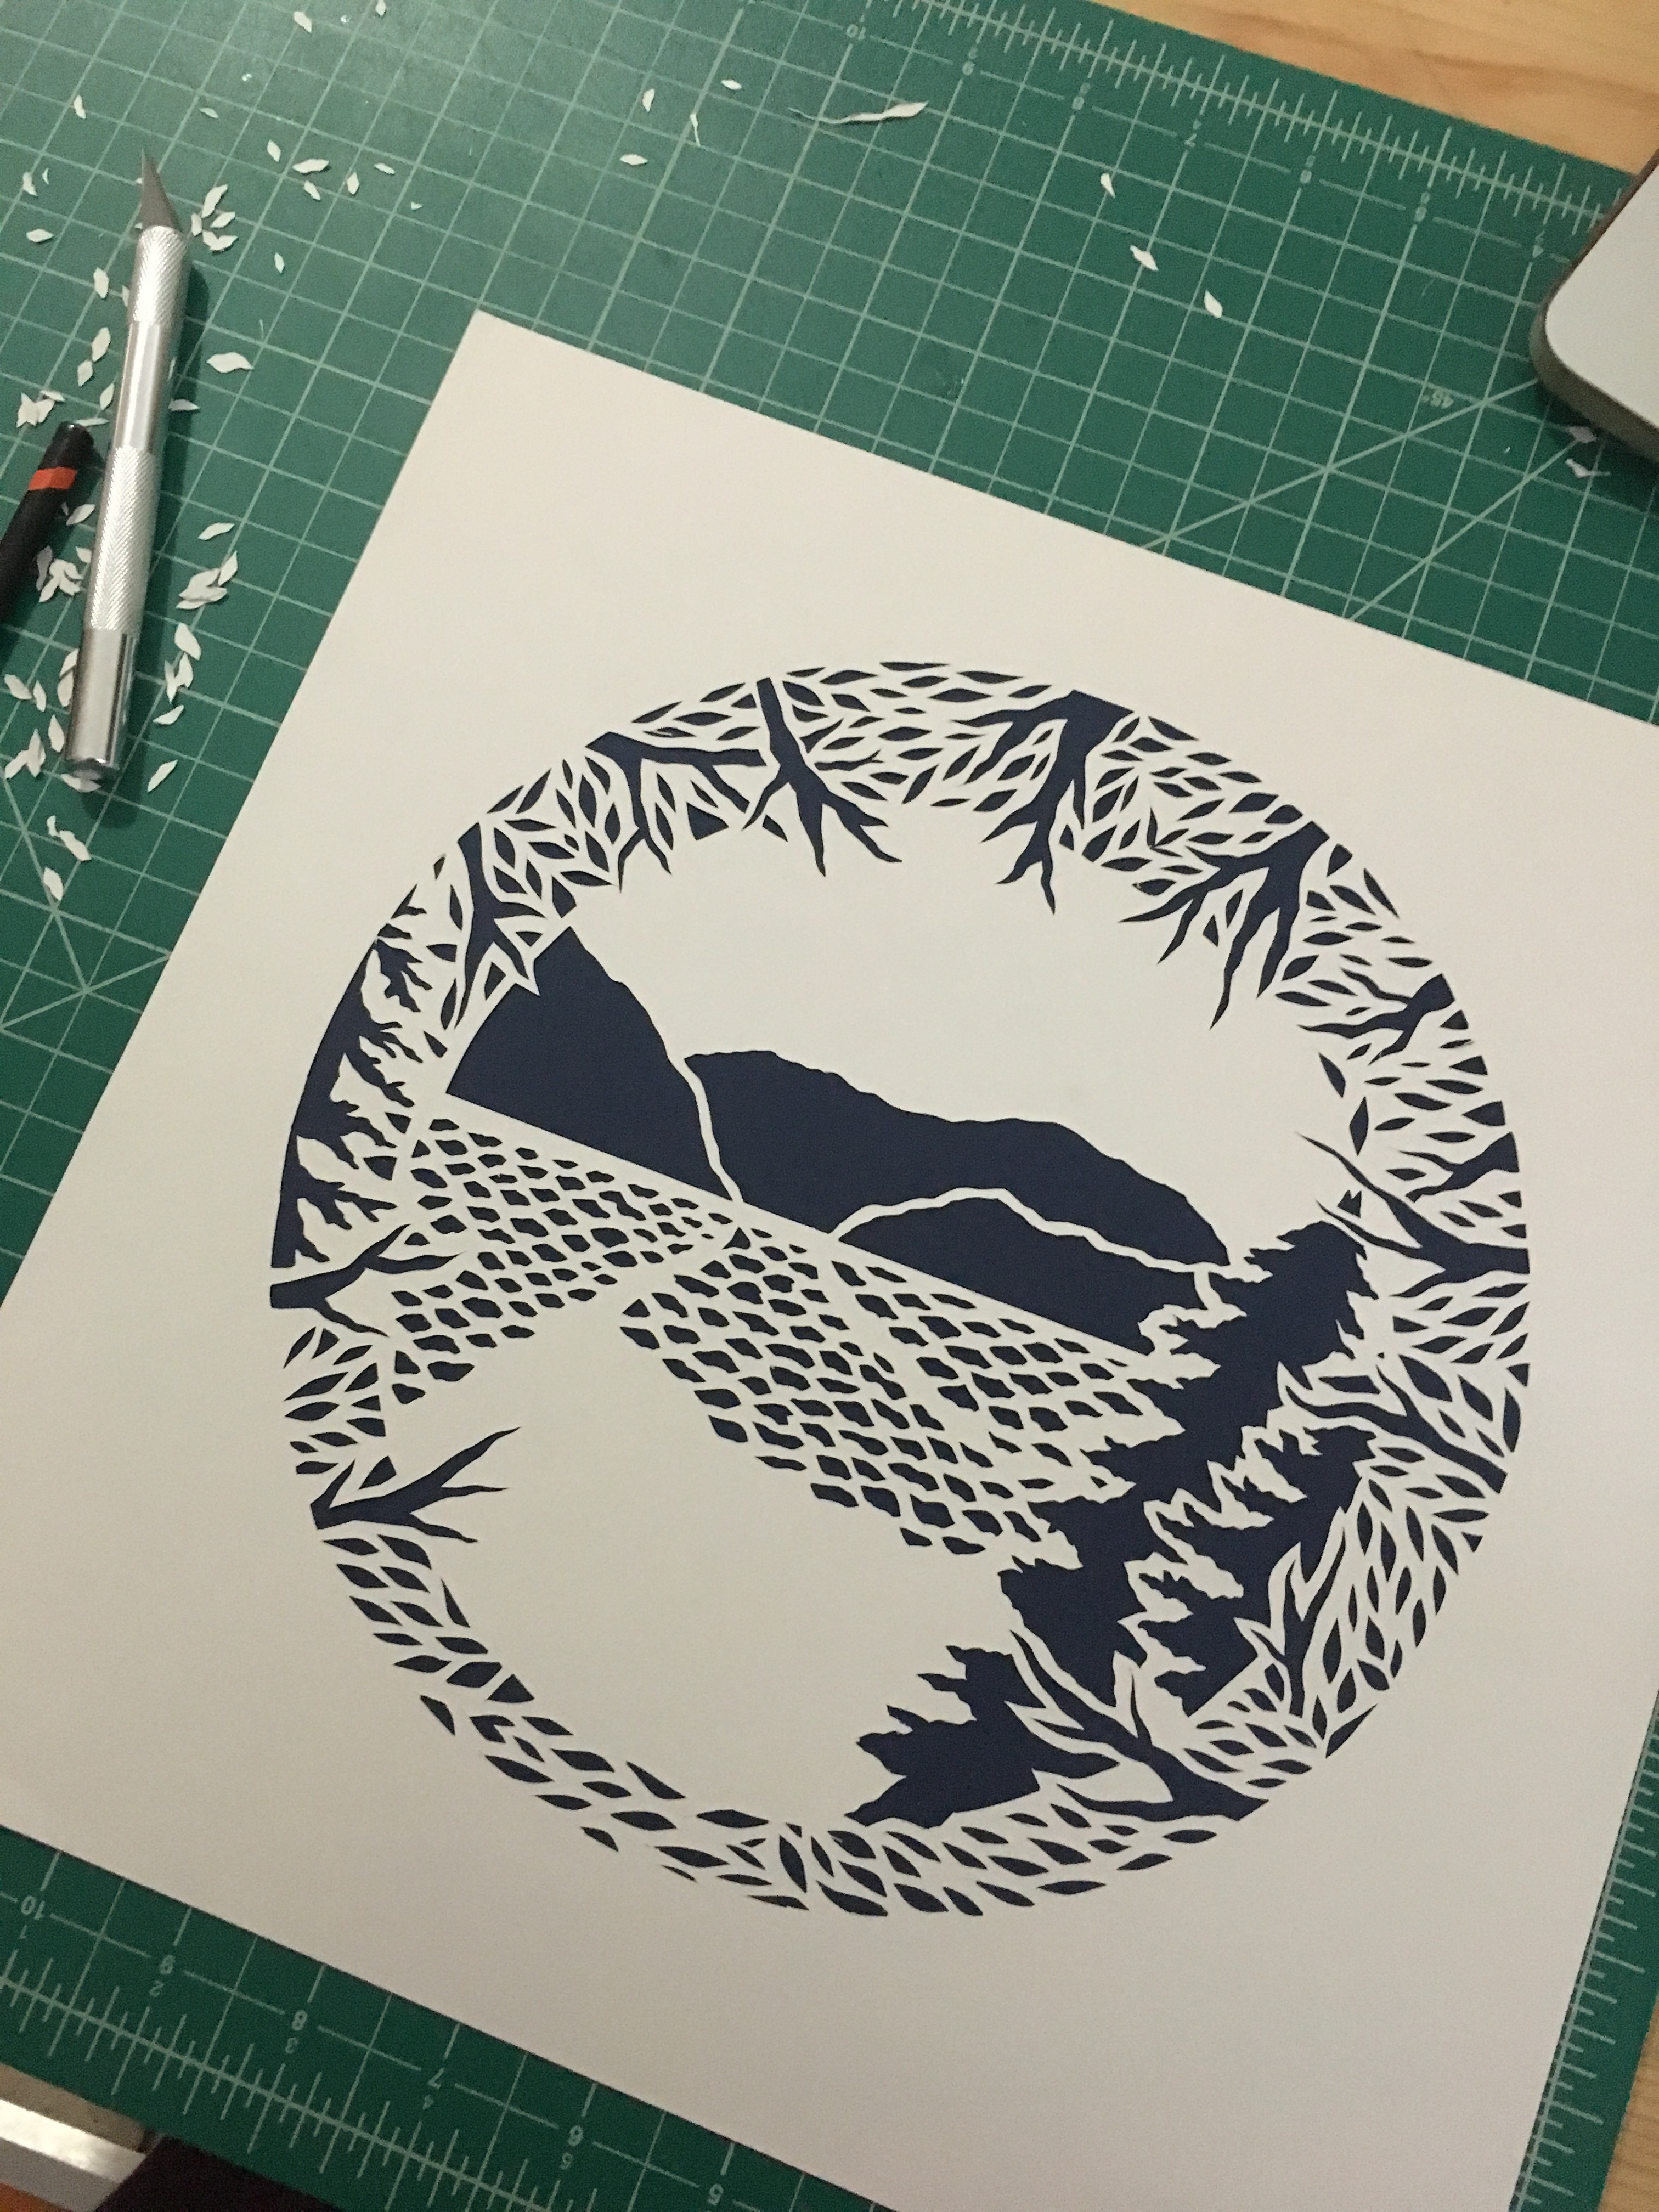 ocean and mountain scene by cutting forms out of one paper